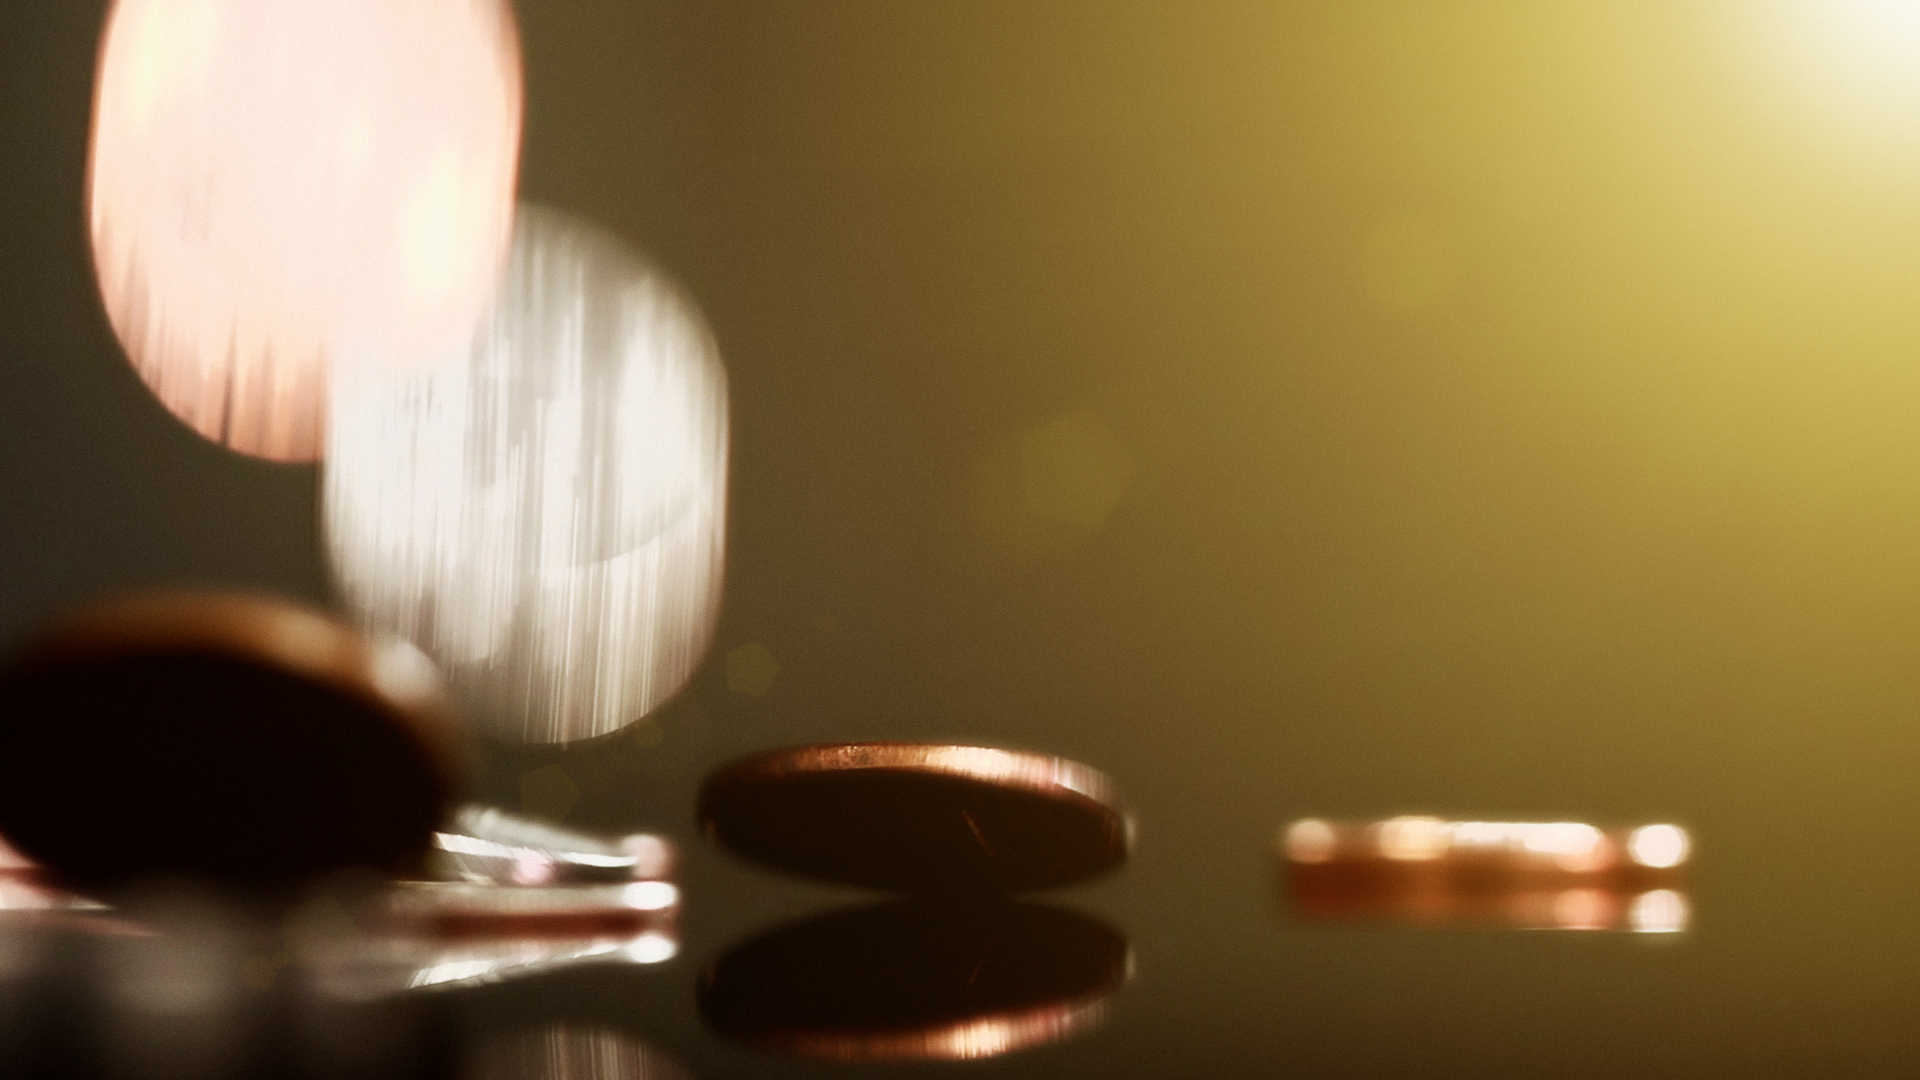 Silver and copper coins falling onto a reflective surface, showing  motion blur and lens flare. Copy space on the greeny-gold background.